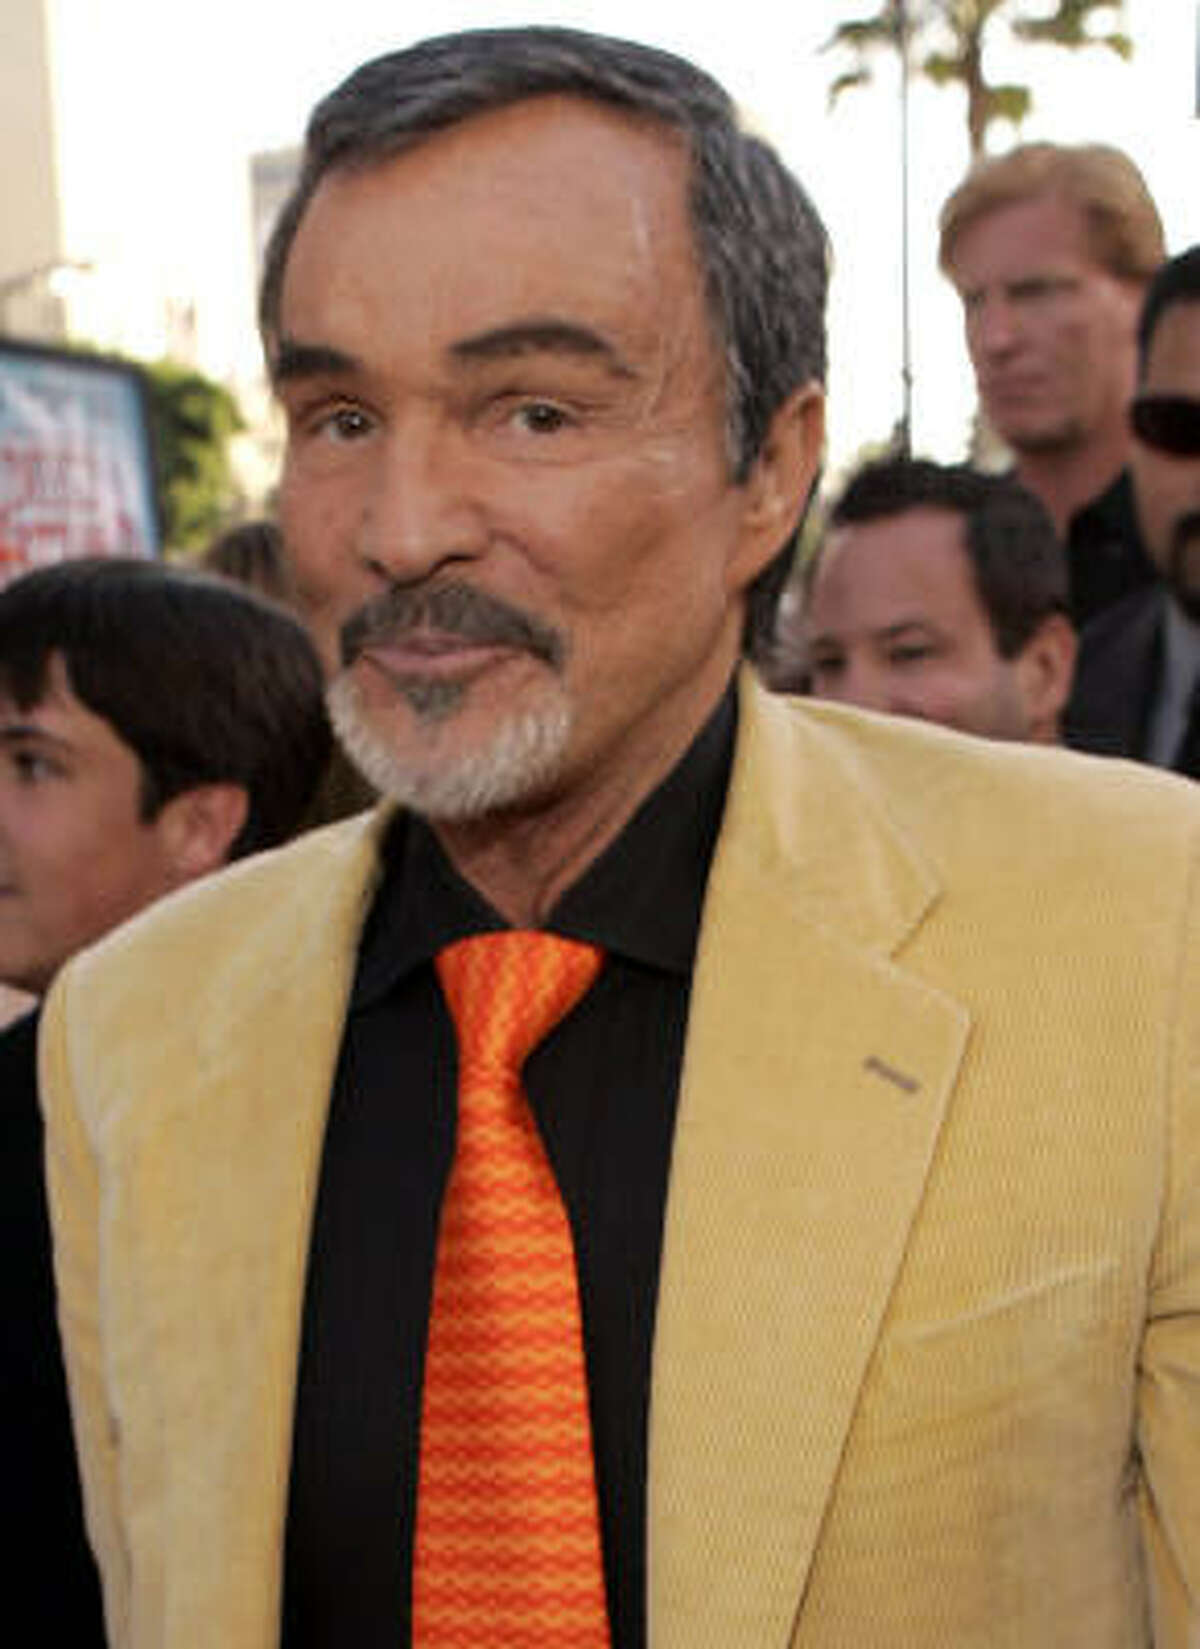 After an alleged addiction to prescription drugs and alcohol, Burt Reynolds has checked himself into a Florida rehab center.